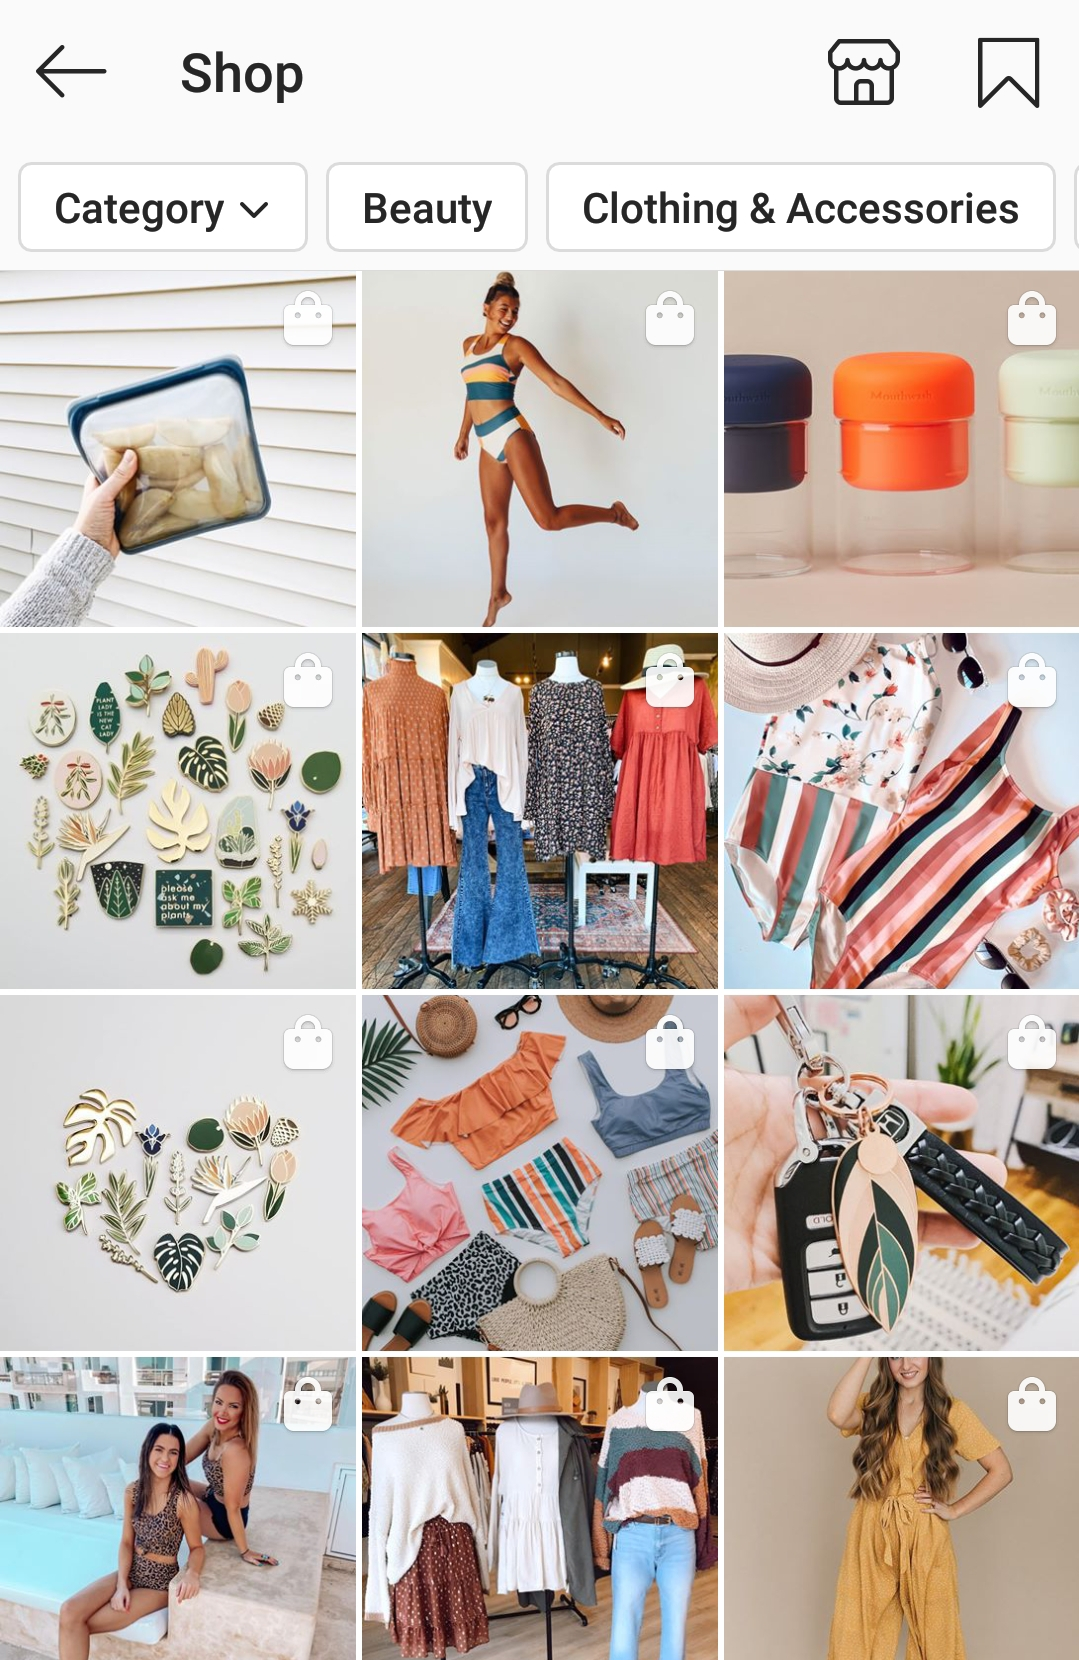 Instagram social shopping ecommerce, Pattern